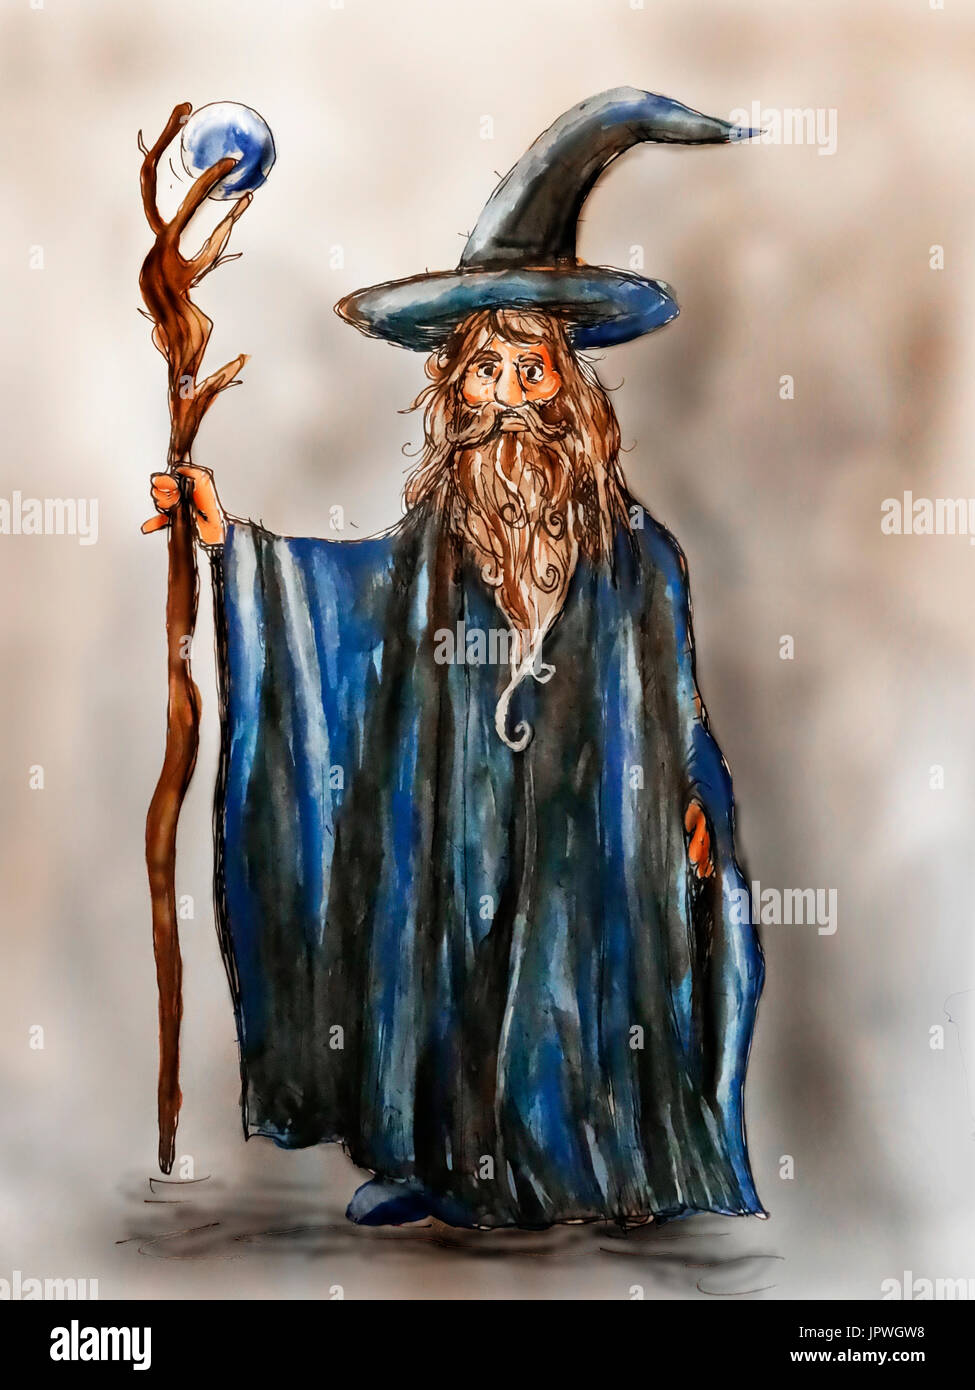 An Illustration Of A Classical Fantasy Wizard Warlock Or Mage Stock Photo Alamy Over 29,281 wizard pictures to choose from, with no signup needed. https www alamy com an illustration of a classical fantasy wizard warlock or mage image151767428 html